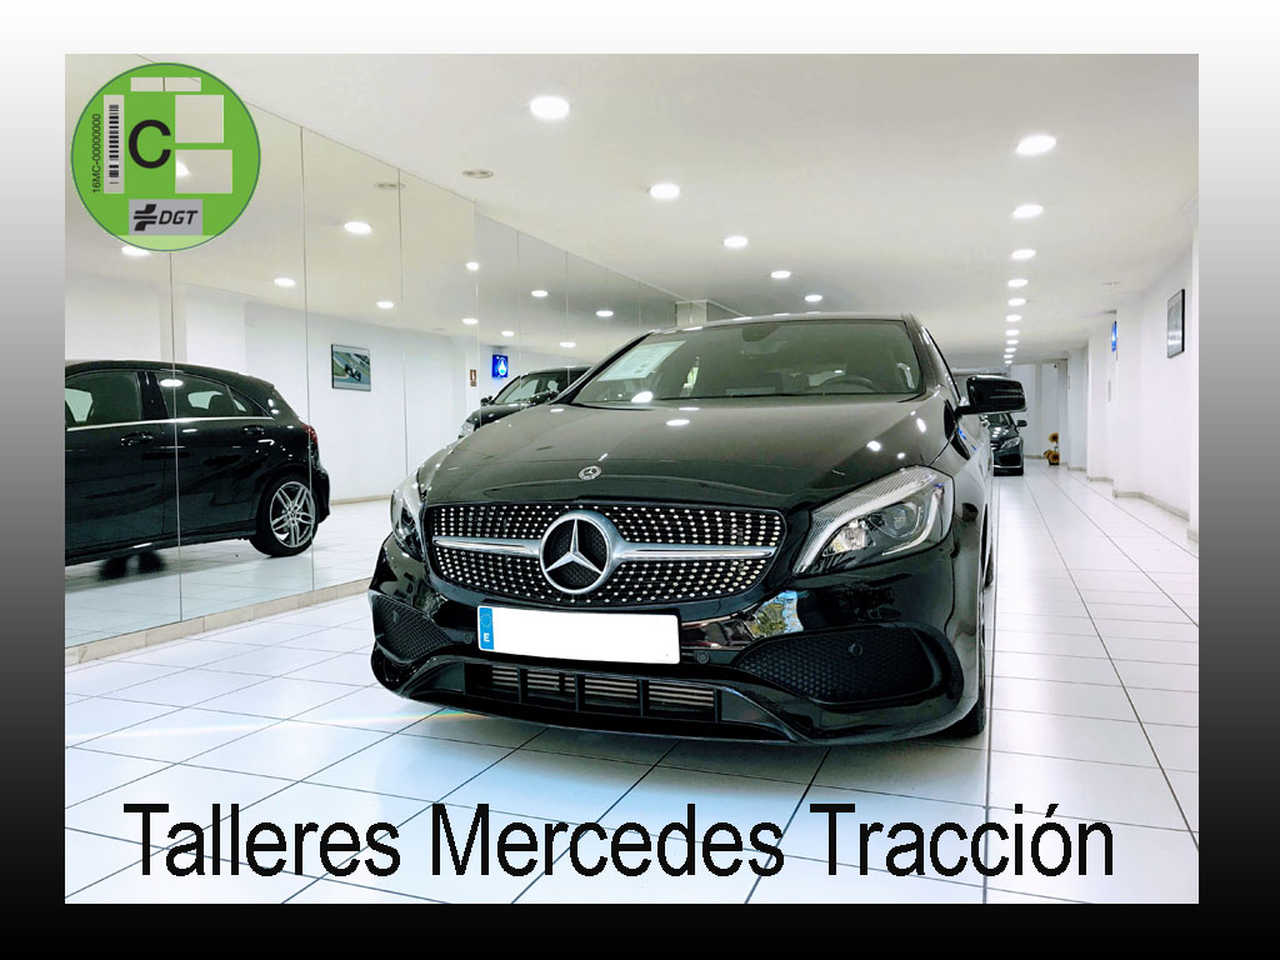 Mercedes Clase A 200 d /7G-DCT/AMG Style/Car Play   - Foto 1